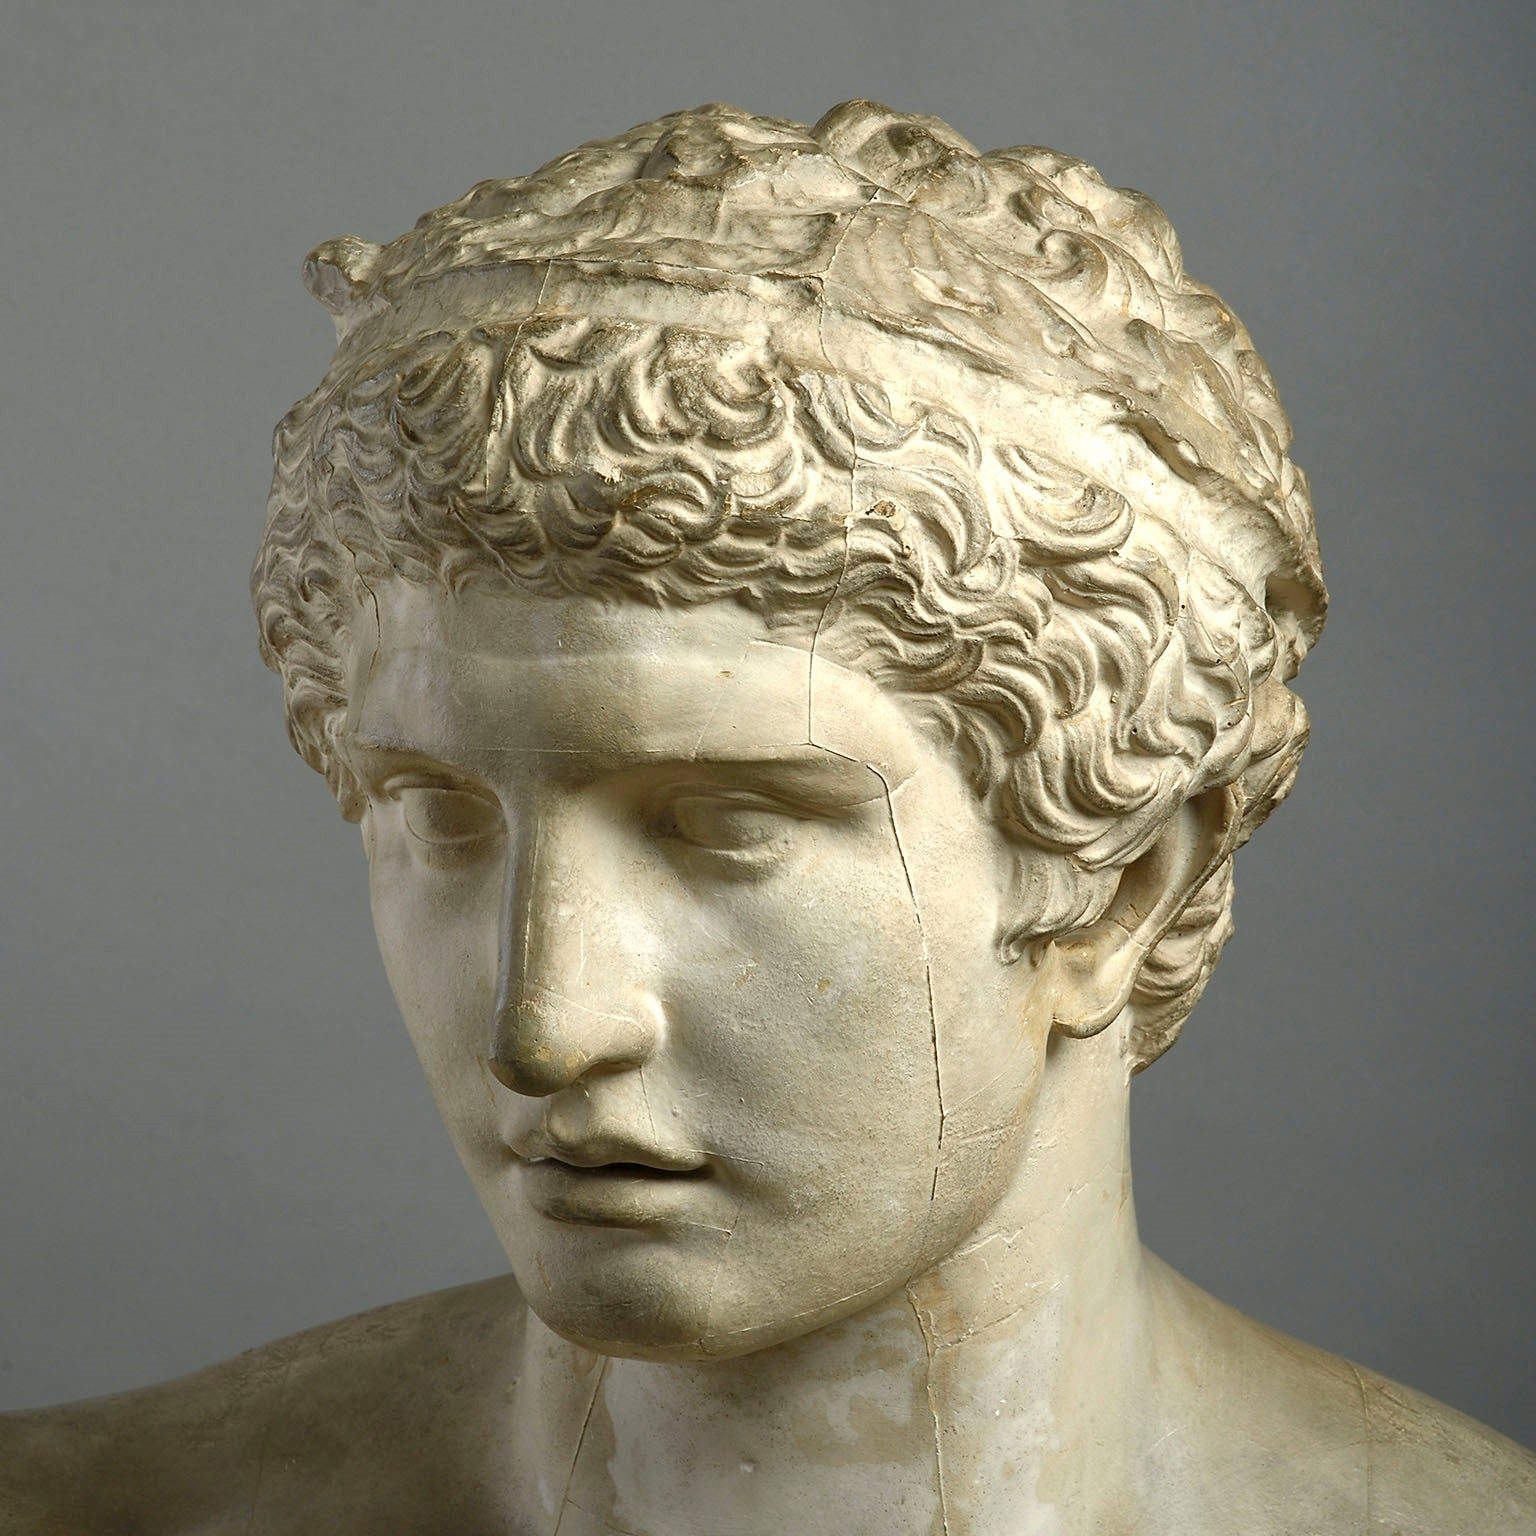 A Large Plaster Cast Bust Of Hermes by D. Brucciani & Co